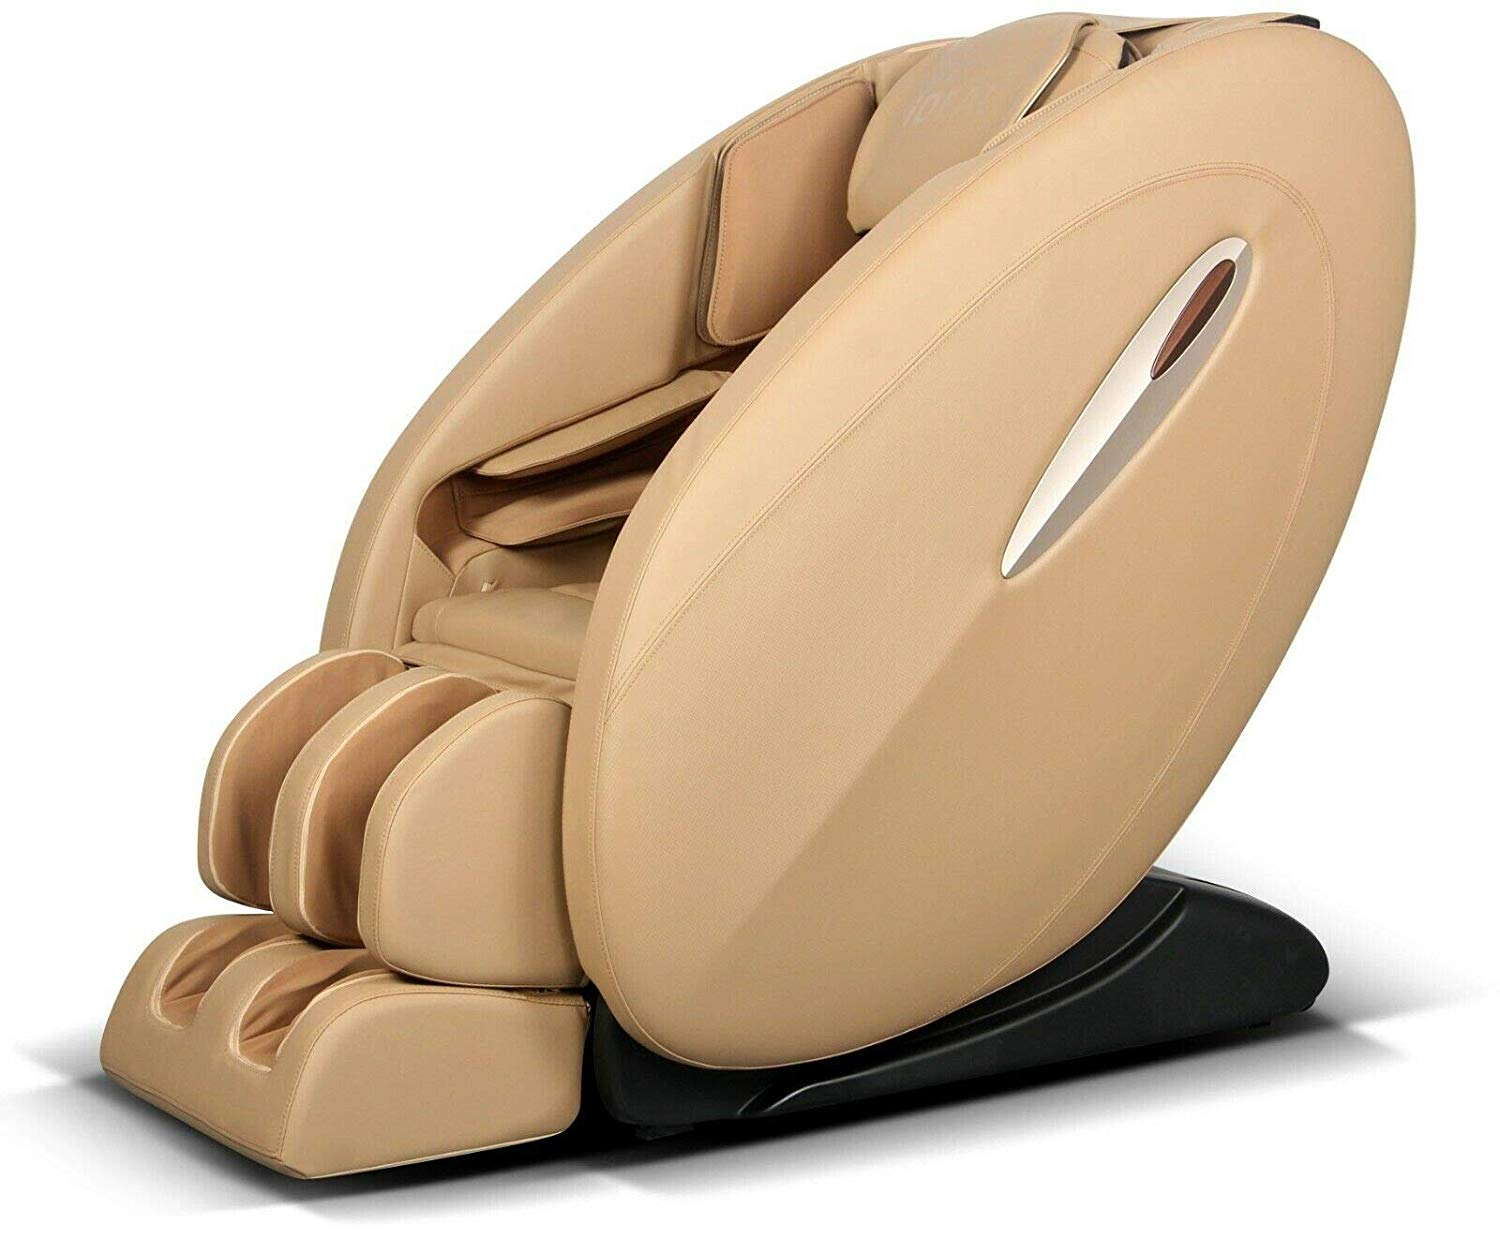 Best massage chair in 2000